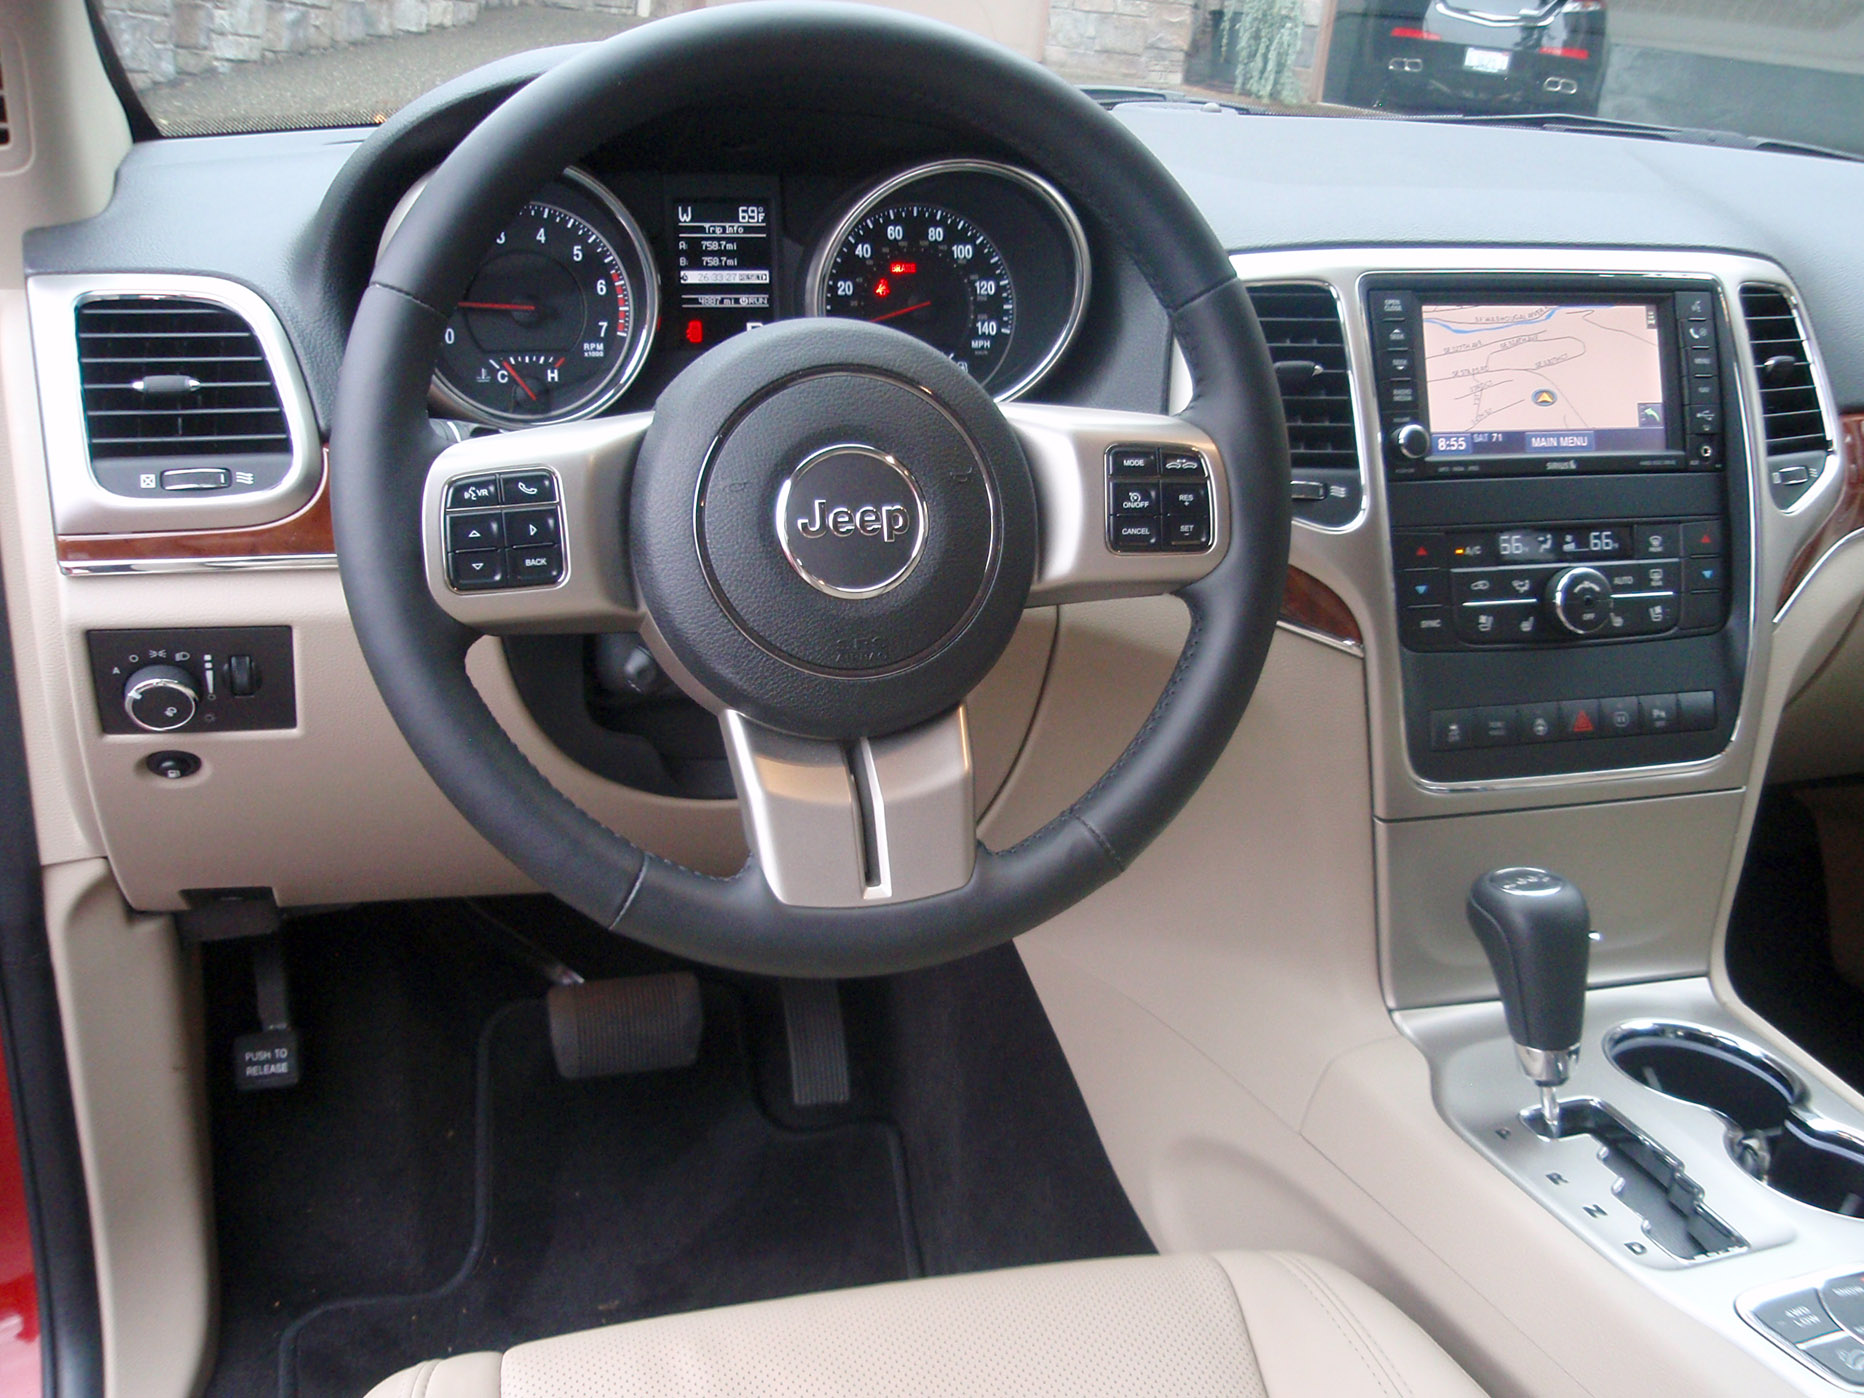 Road Test: Jeep Grand Cherokee Our Auto Expert